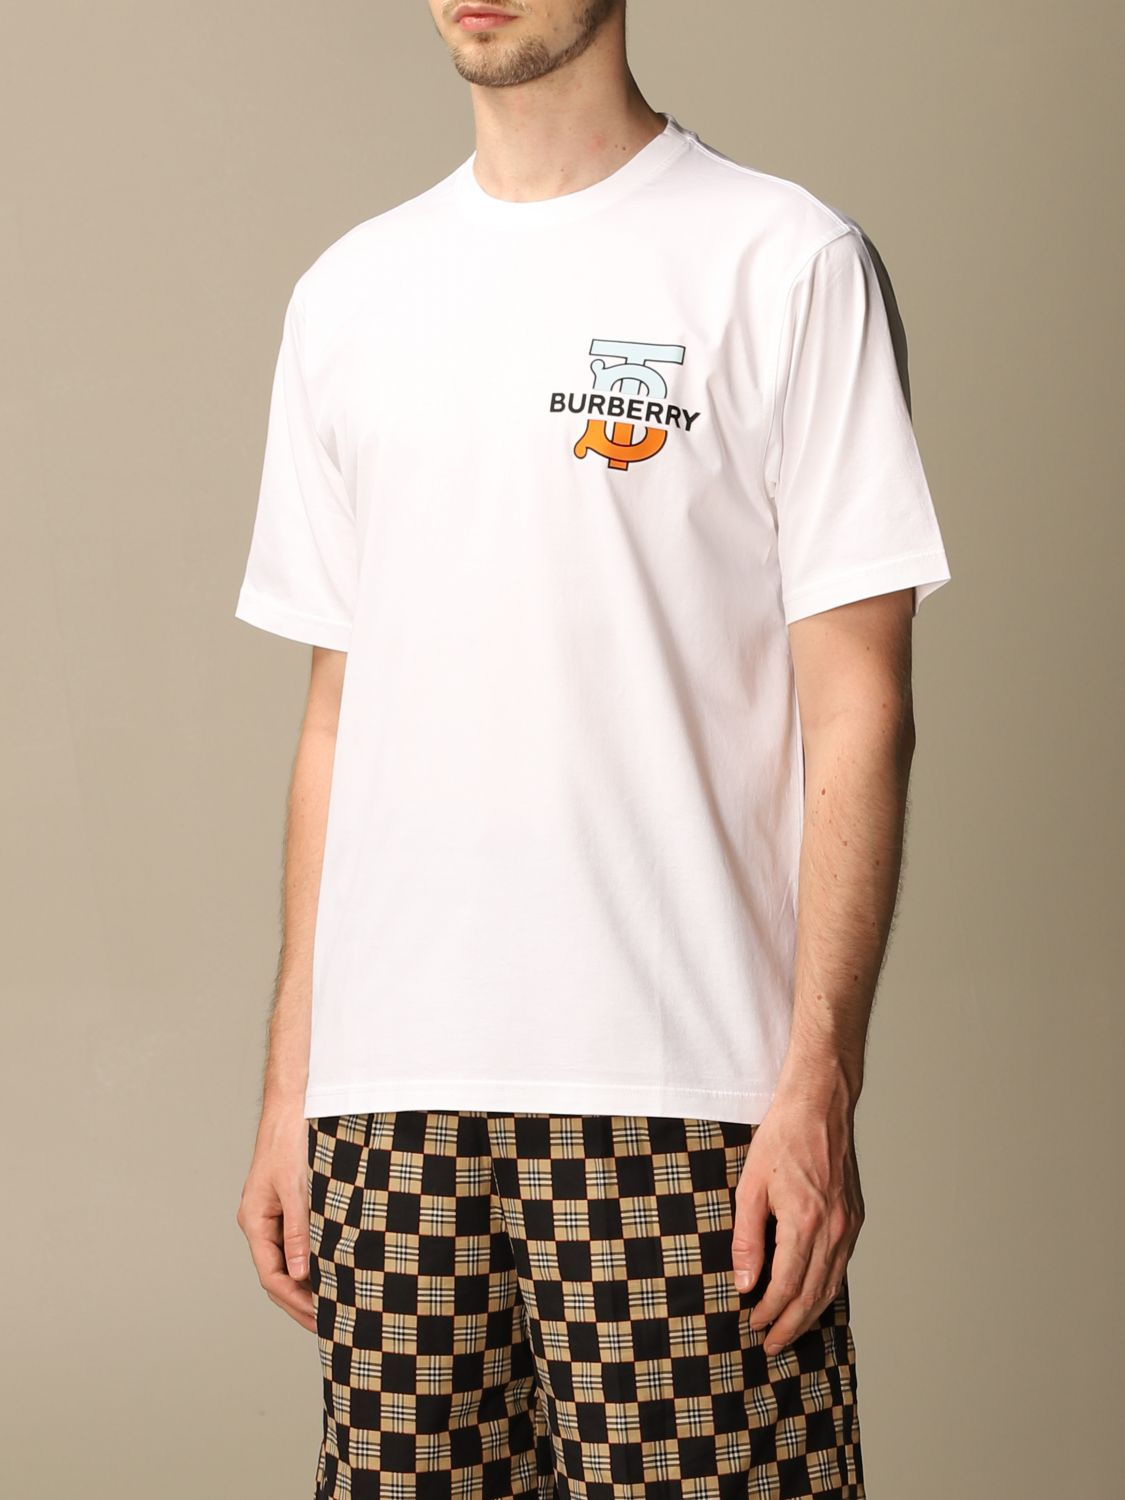 T-shirt Burberry: Ganther Burberry stretch cotton T-shirt with TB monogram white 4